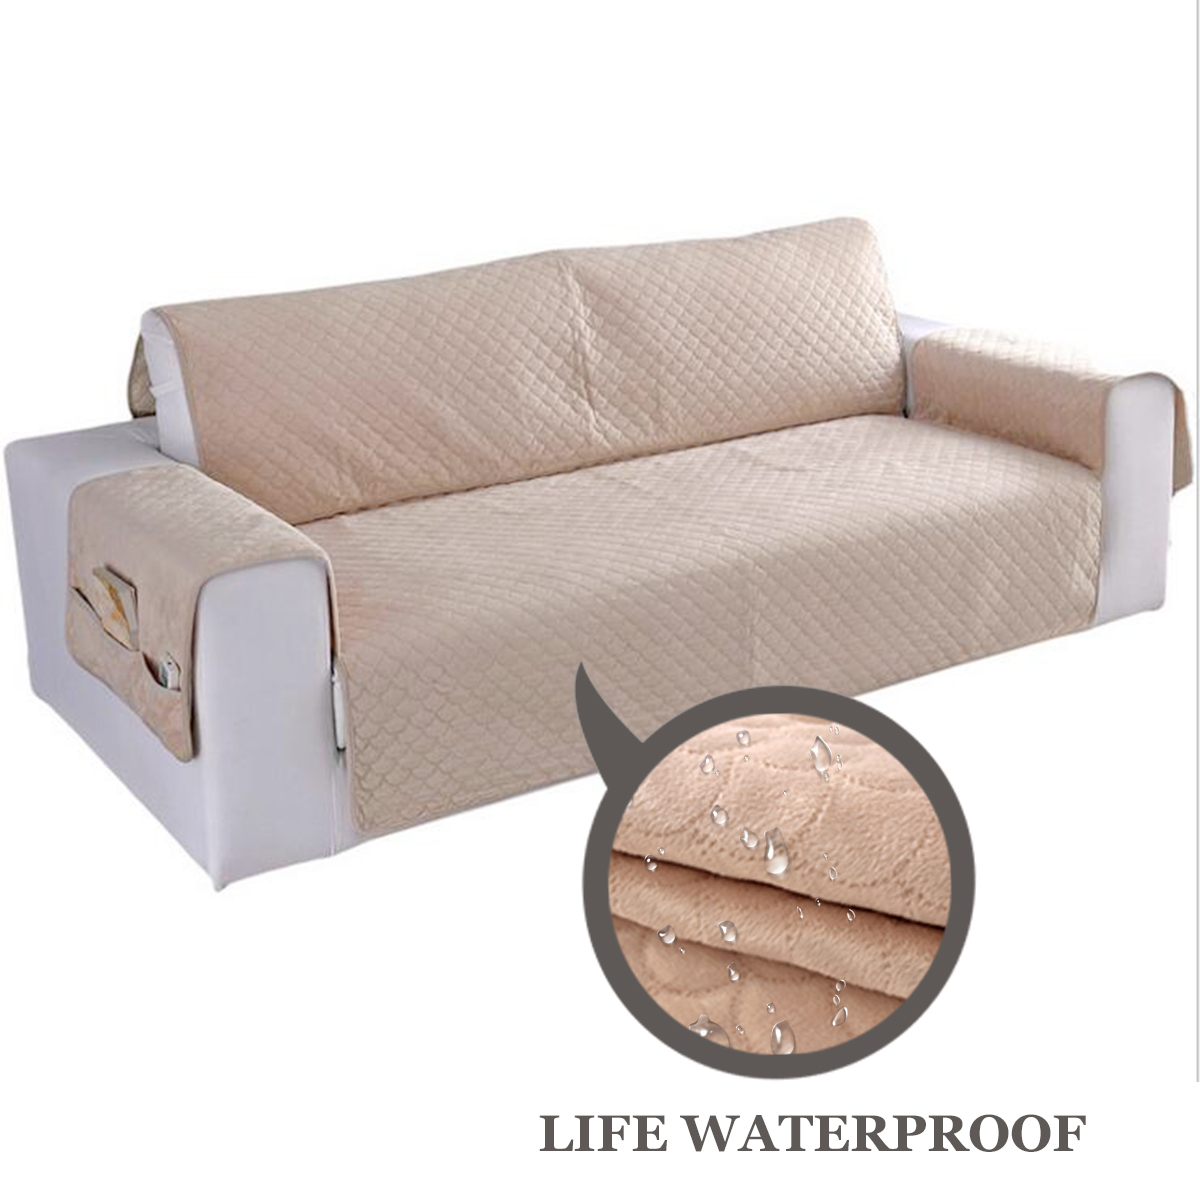 1/2/3 Seats Chair Covers Sofa Couch Short Plush Protector Cover Pads Pet Waterproof +Organizer